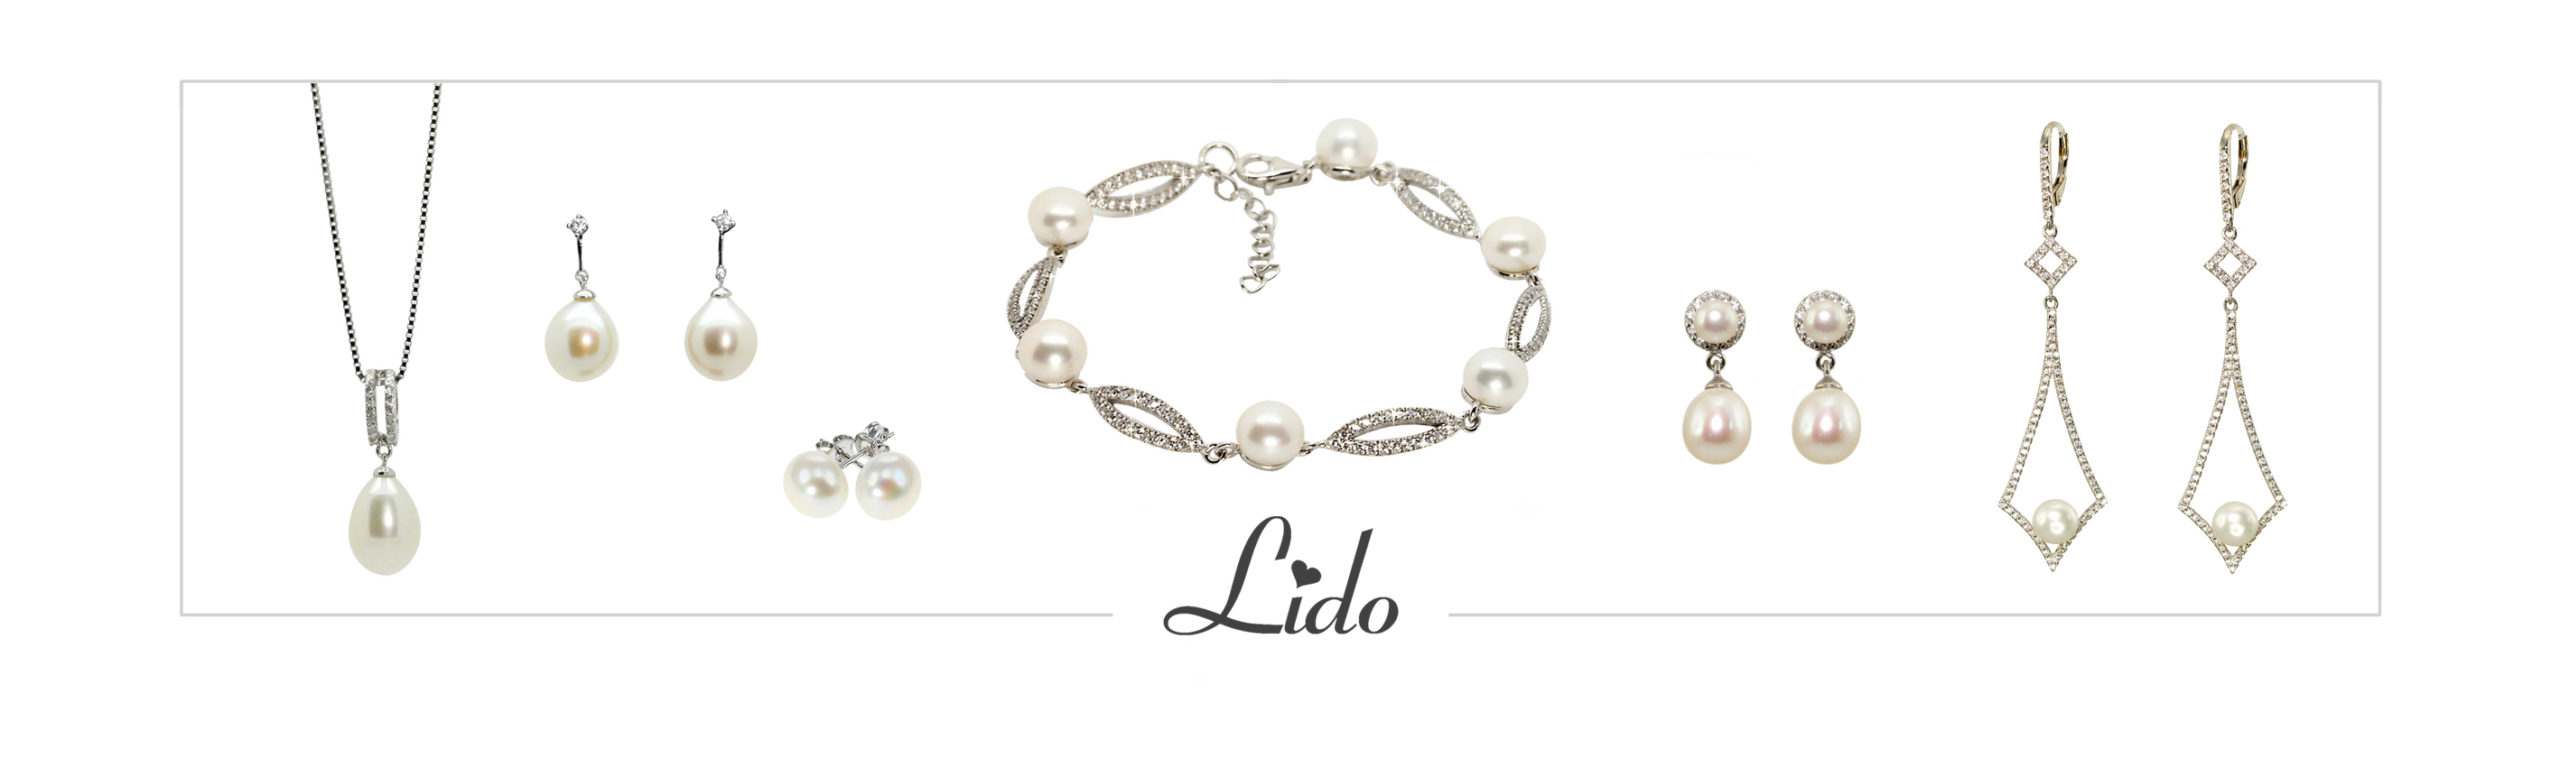 Lido Jewellery available at Louise Shafar